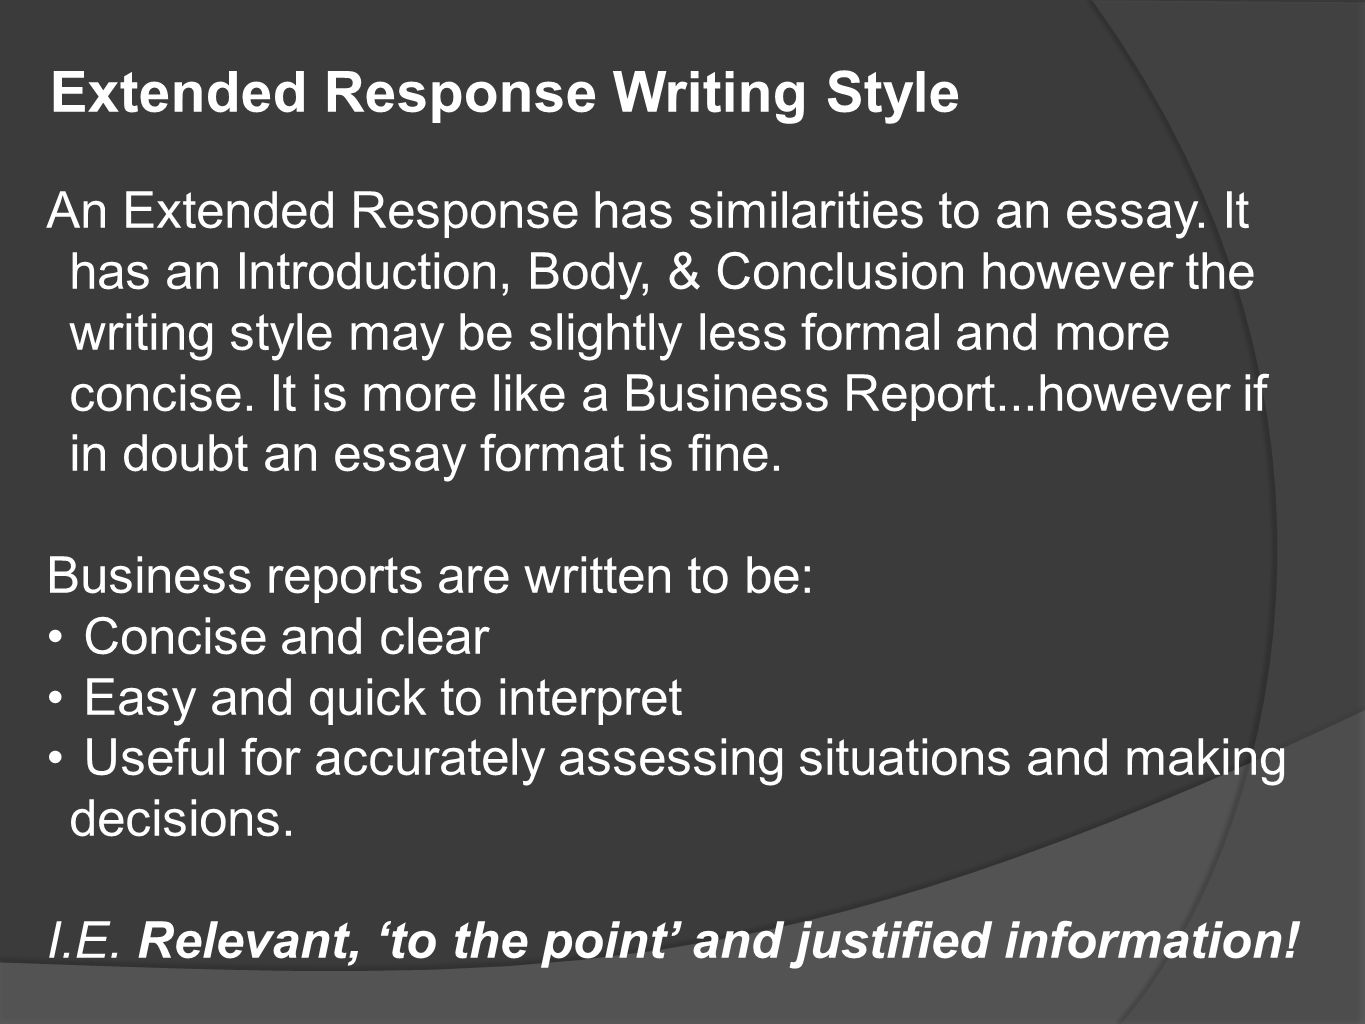 Extended Response Writing Style